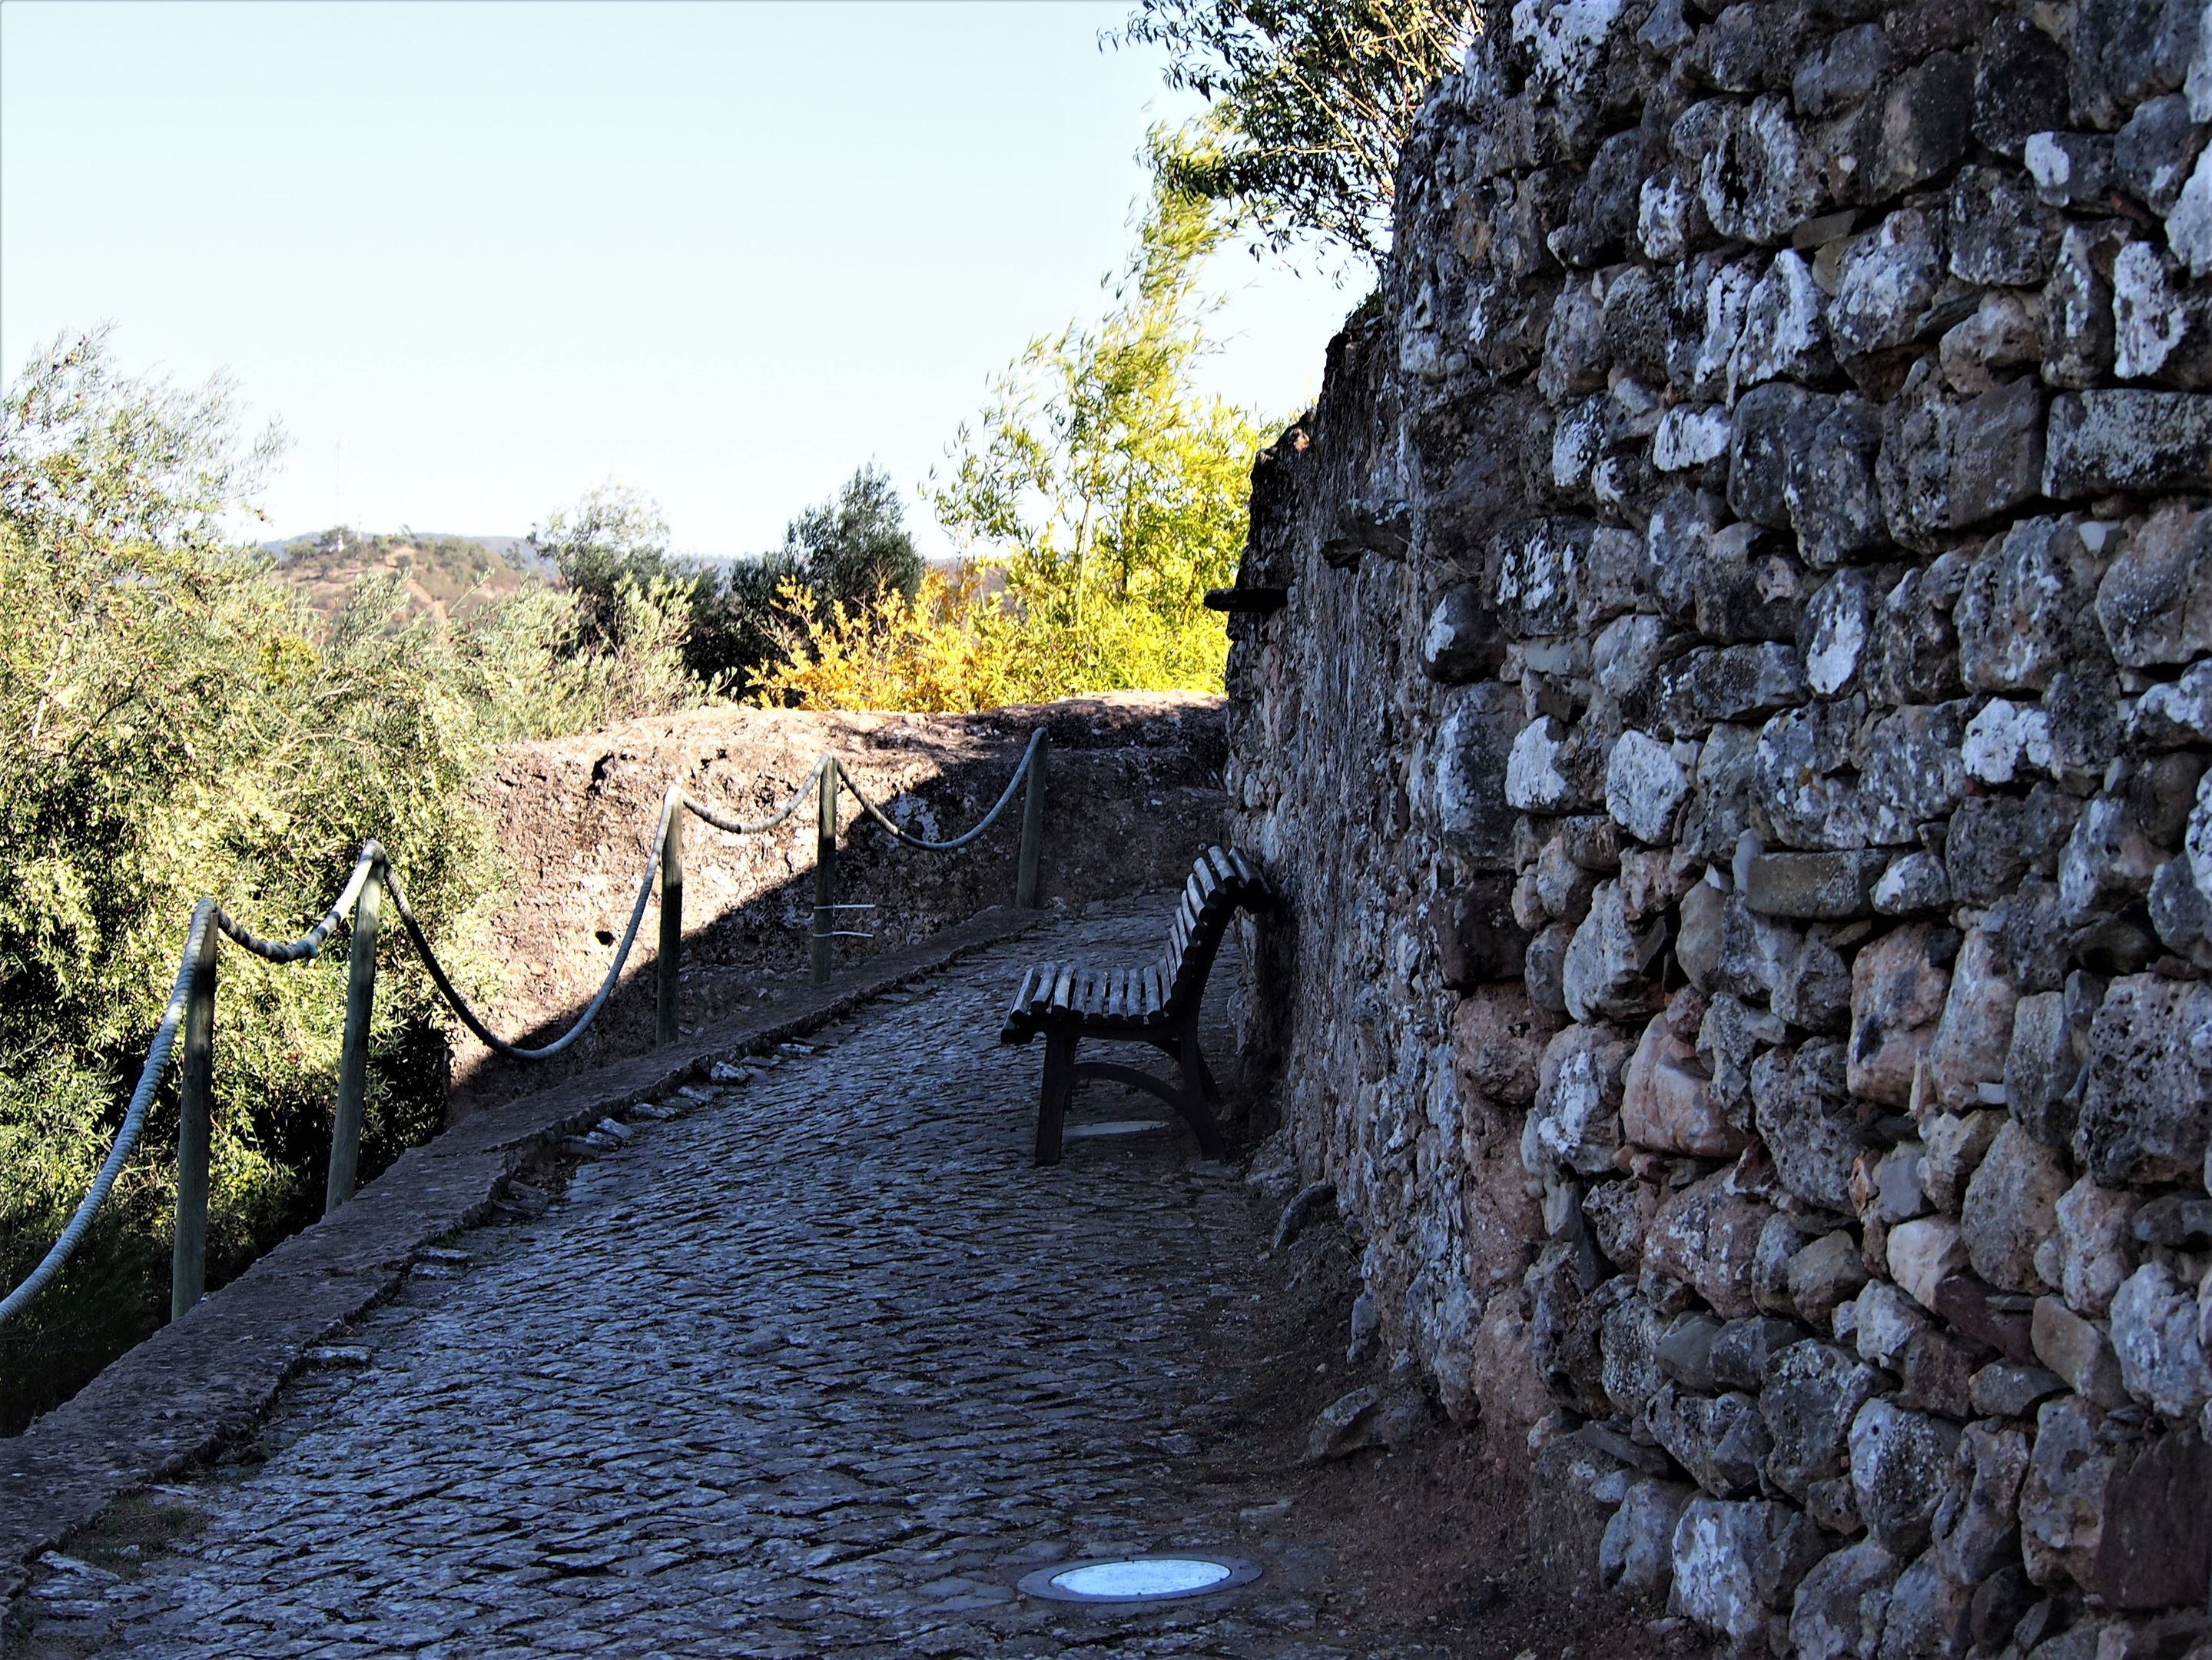 Footpath around the remains of the castle walls, Salir